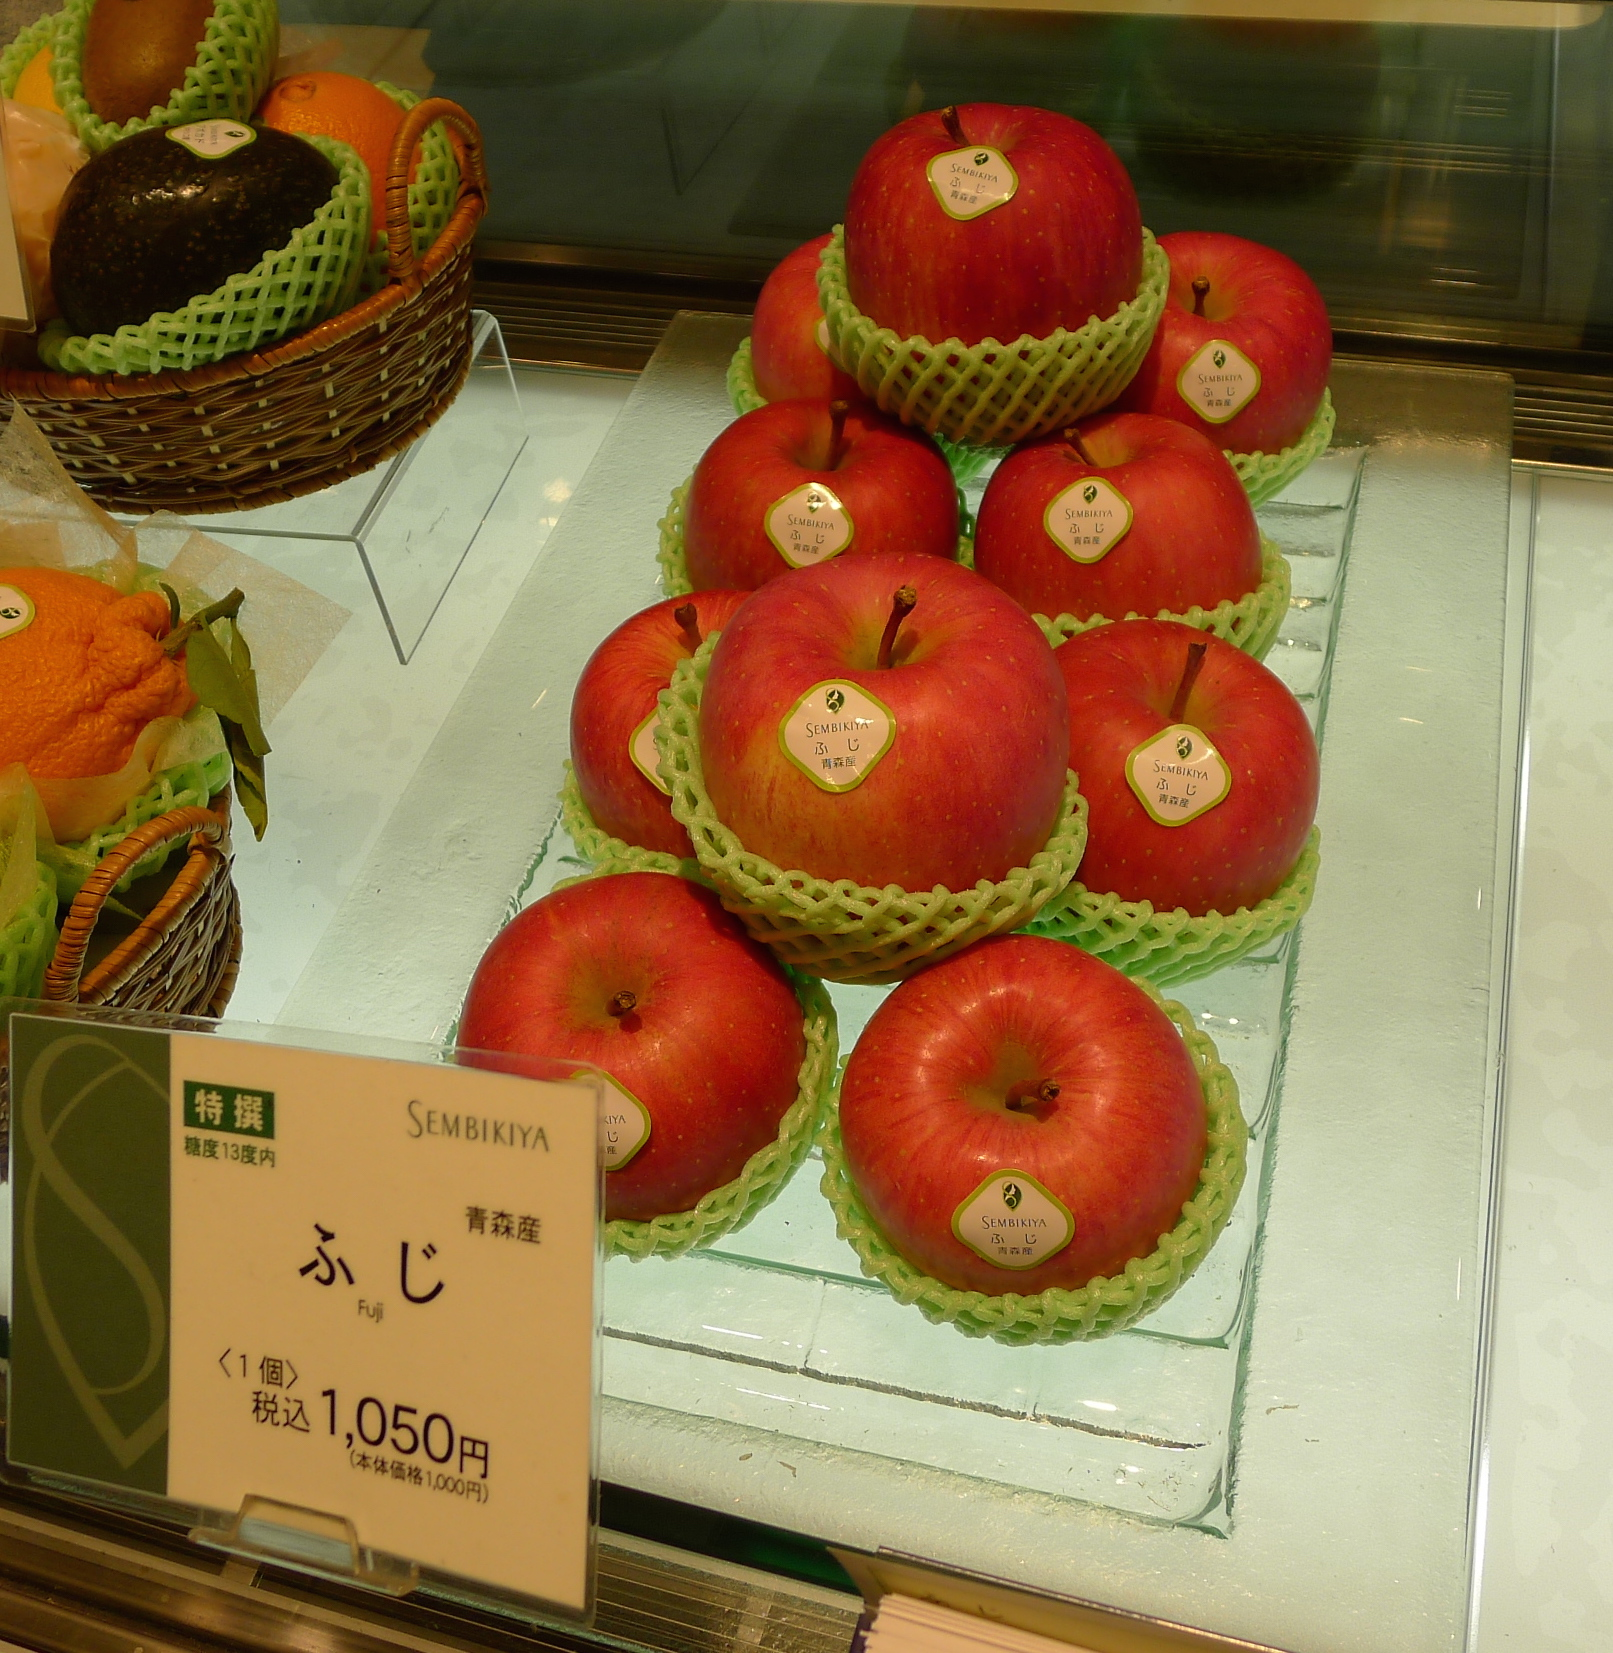 The Fuji Apple in Japan